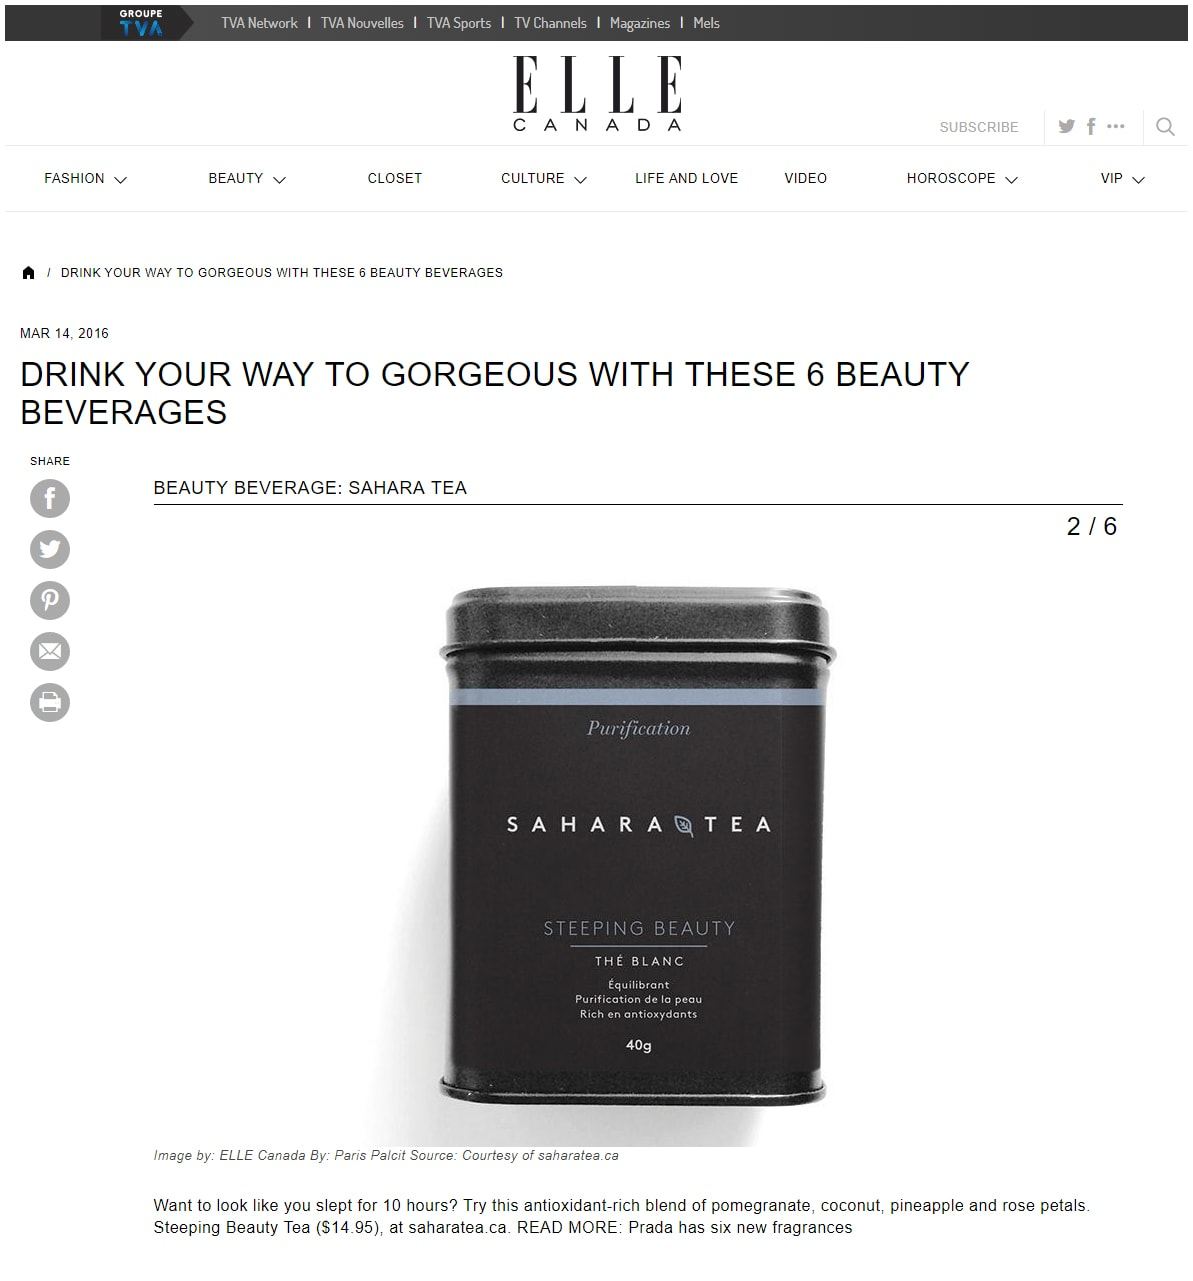 Sahara & Co Elle Canada Steeping Beauty Article